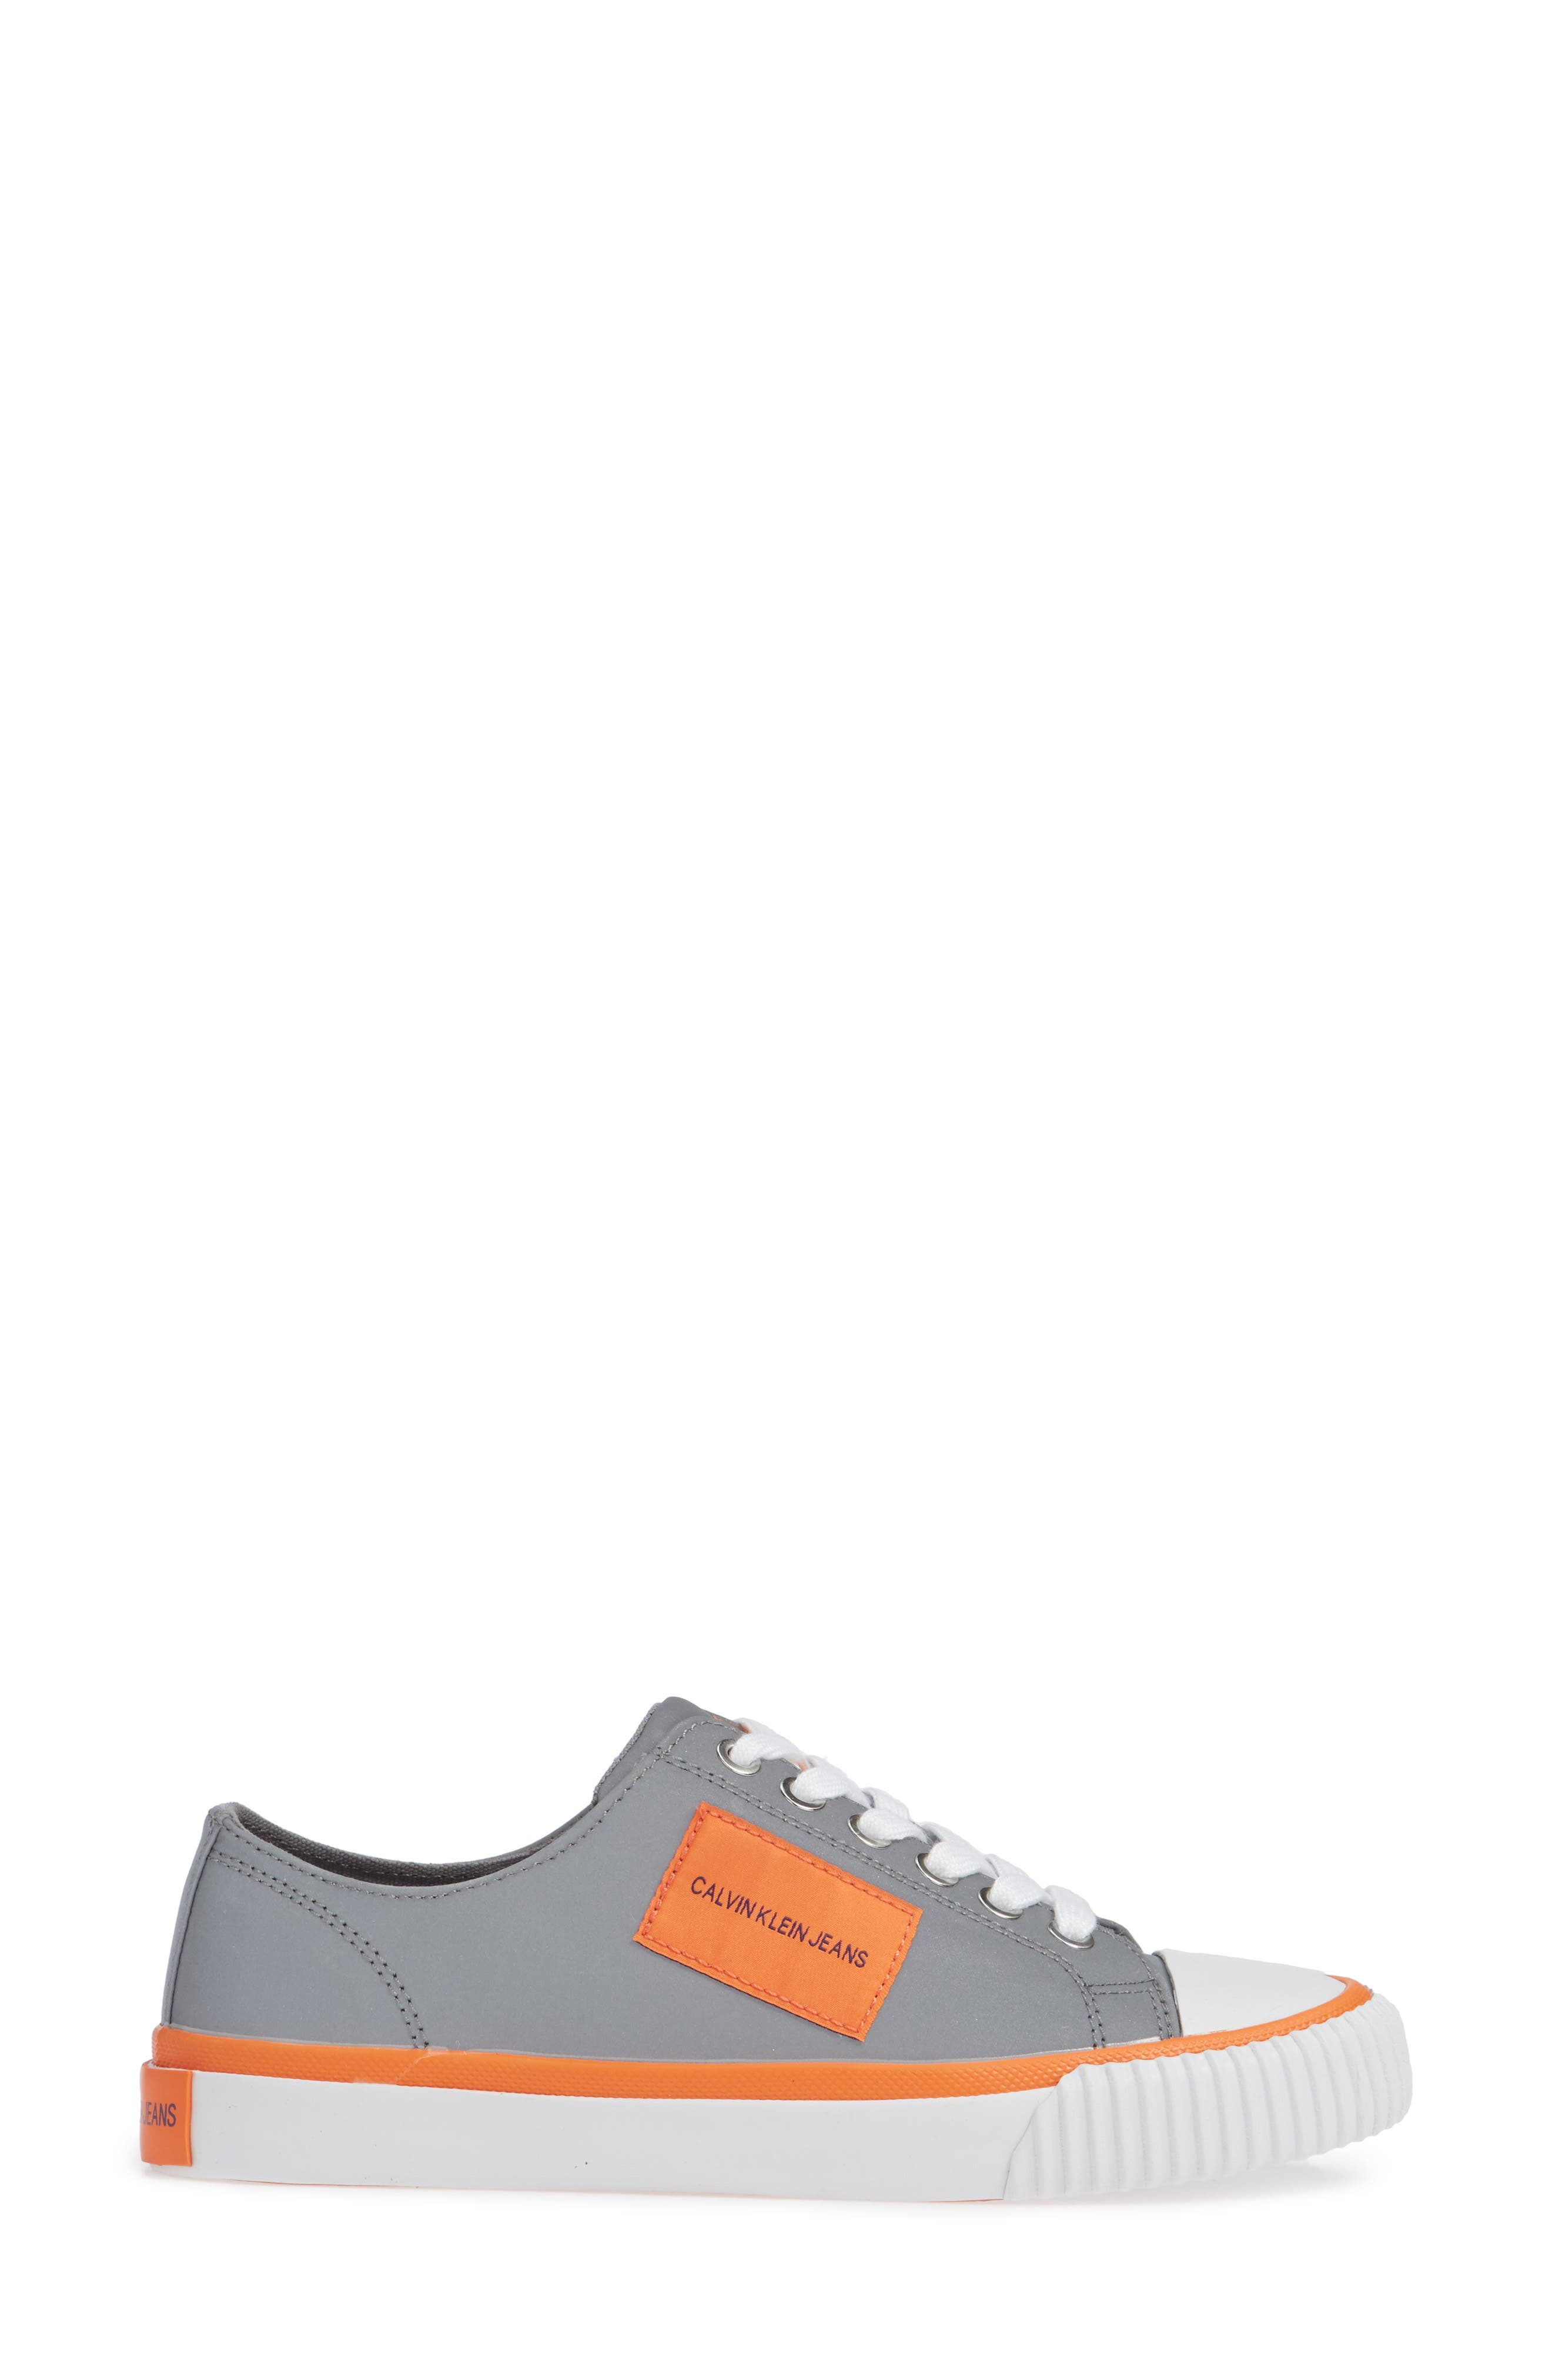 Ivory Lace-Up Sneaker,                             Alternate thumbnail 3, color,                             SILVER